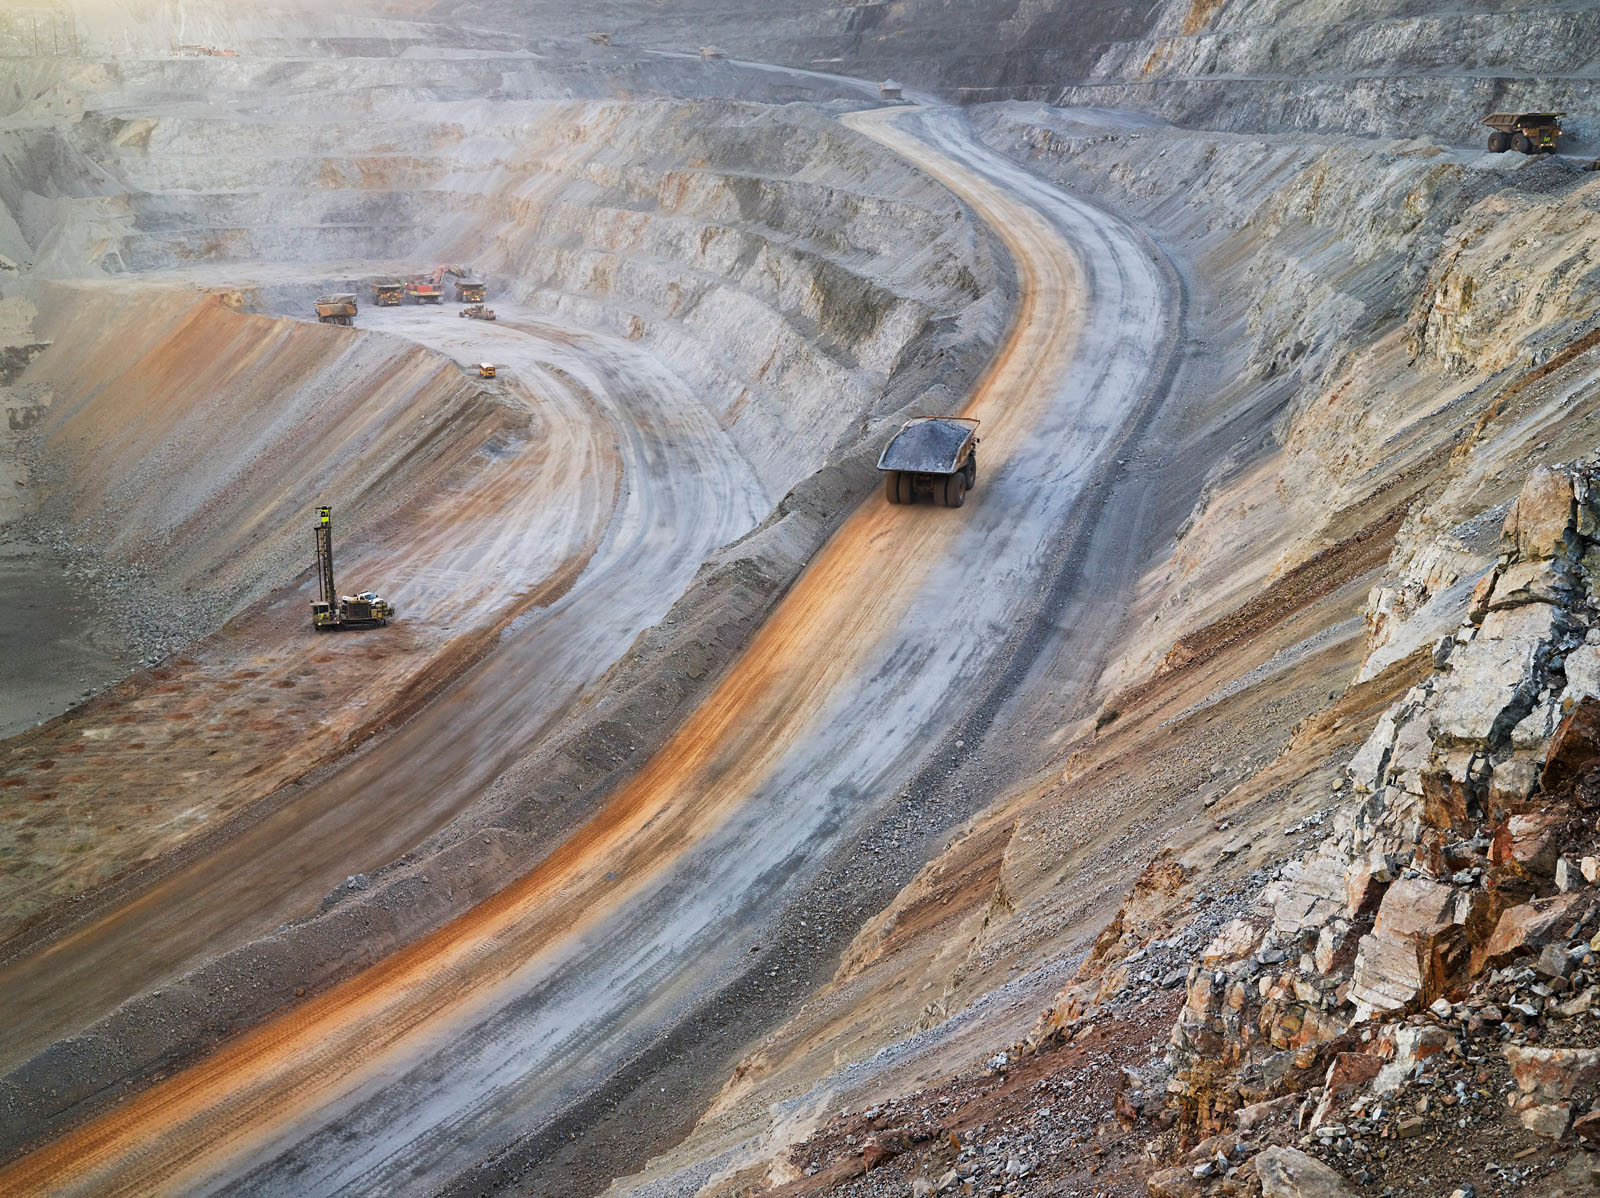 Surface Mining, Newmont Mining Corporation, Carlin, Nevada 2012